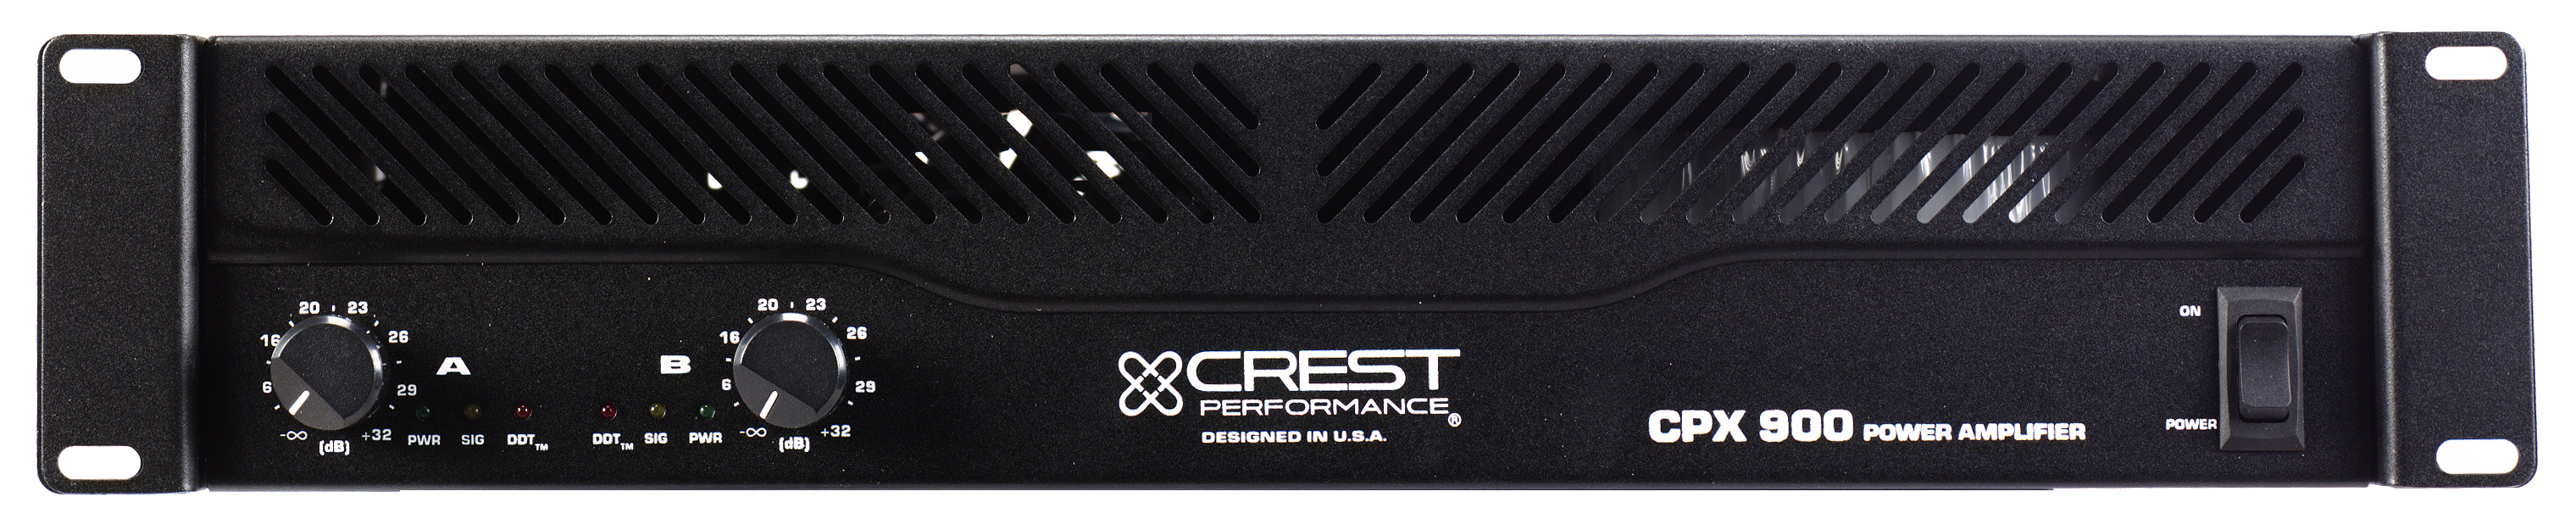 crest cpx 900